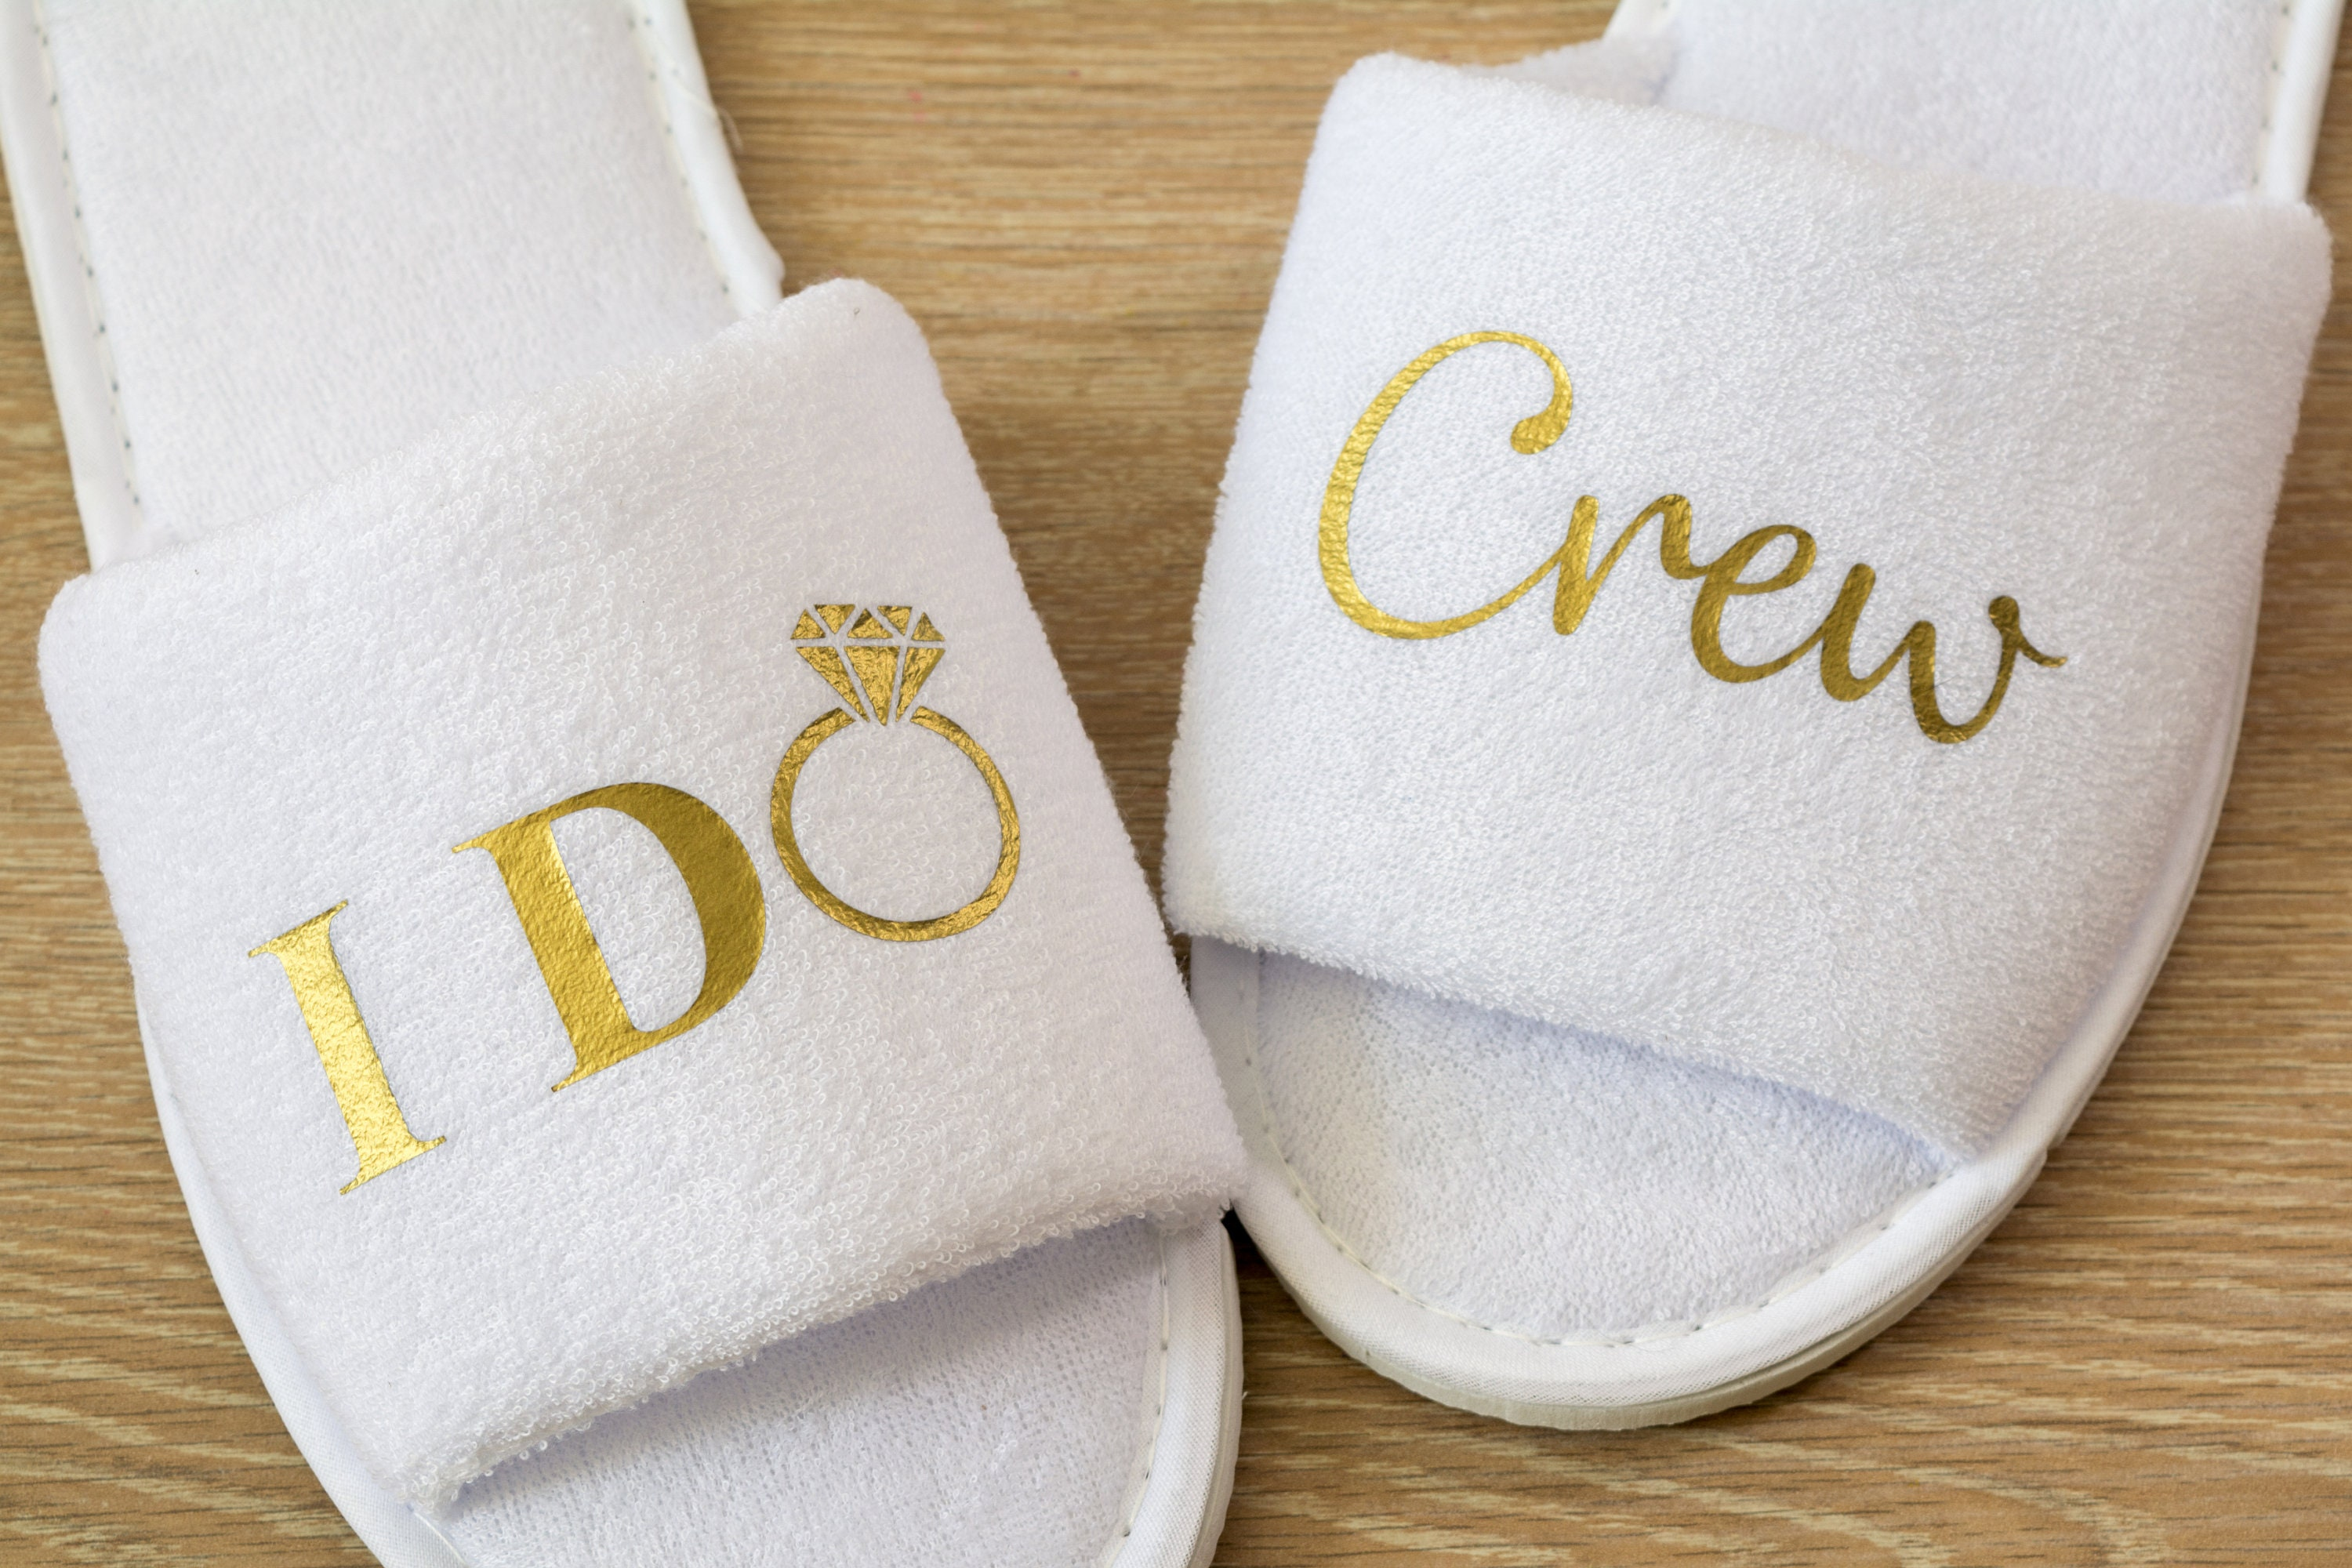 a7a0e4c4f3 Bridesmaid slippers Personalised I Do Crew Wedding Slippers Bride,  Bridesmaid Gift, Bridal Party , Hen Weekend Open Toes Spa Slippers